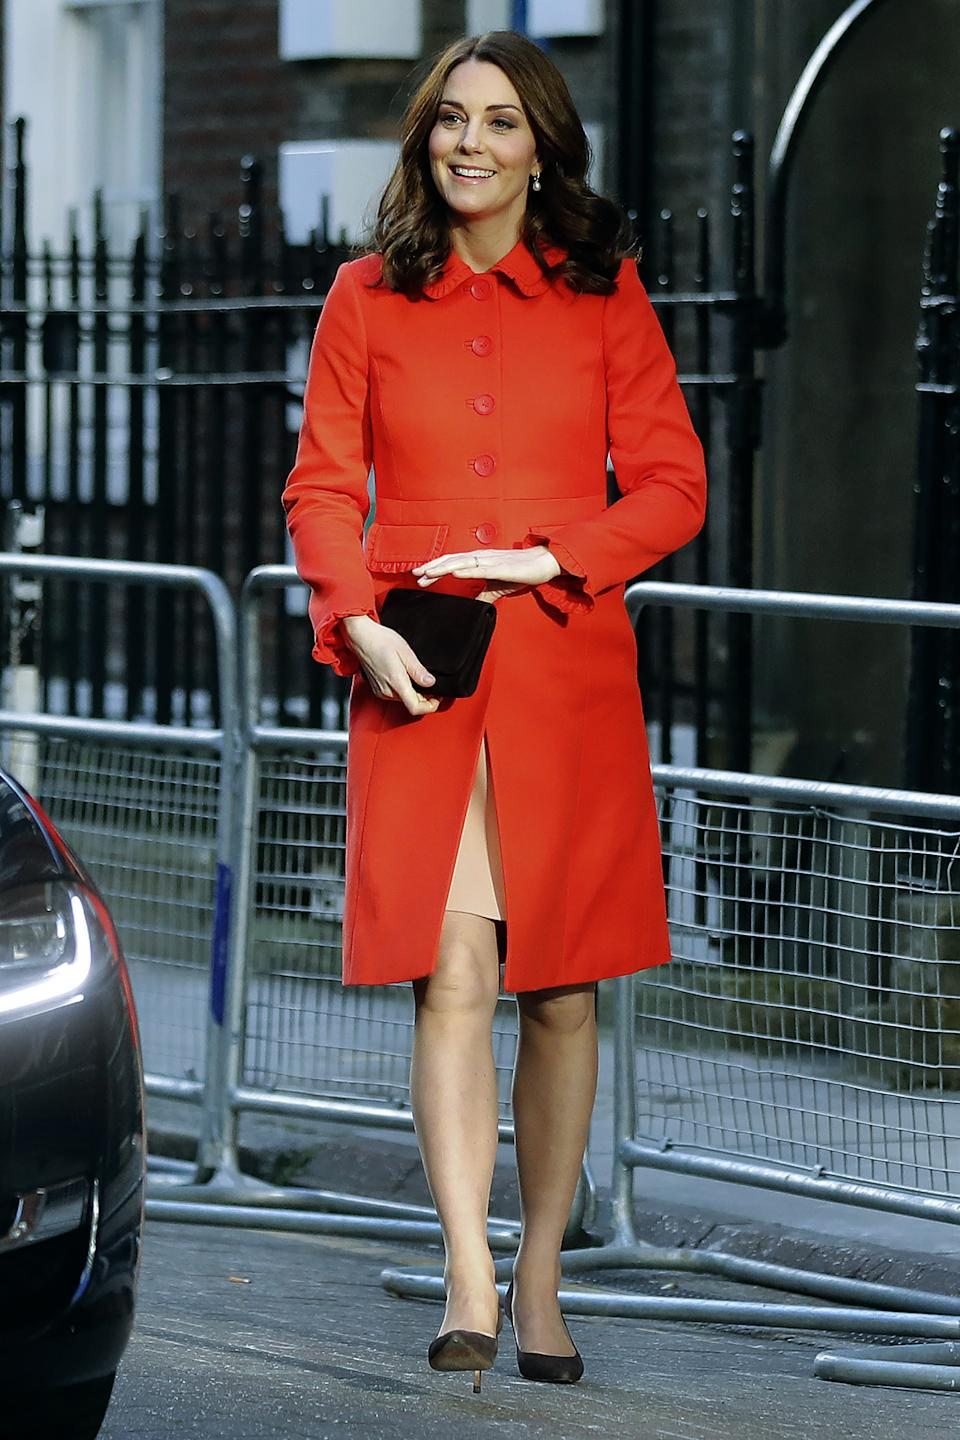 The Duchess of Cambridge wearing a Boden coat during a visit to Great Ormond Street Hospital on January 17, 2018. (Getty Images)